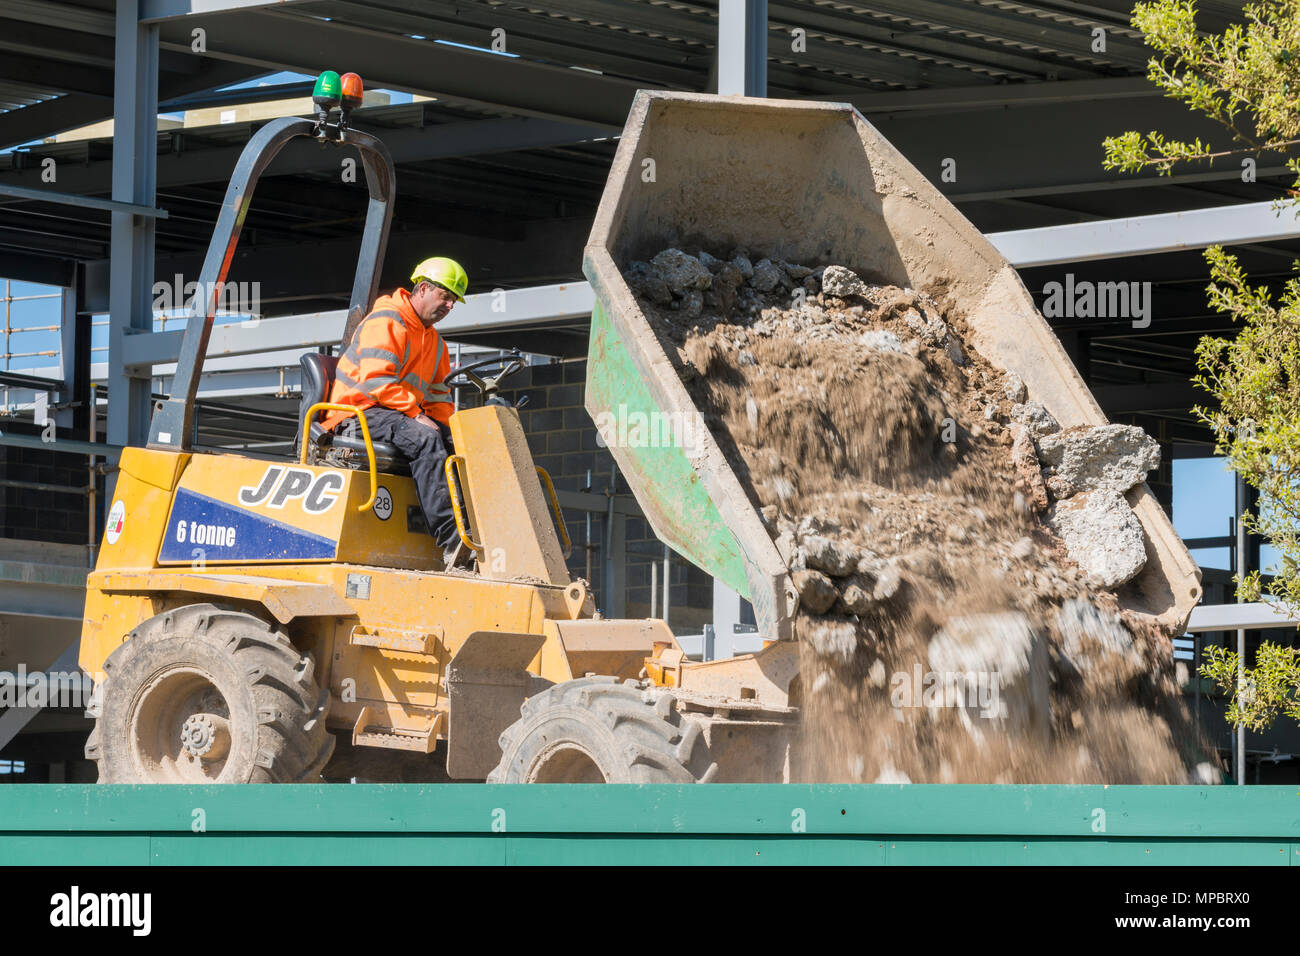 Construction vehicle on a building site tipping out rubble. JPC vehicle. - Stock Image